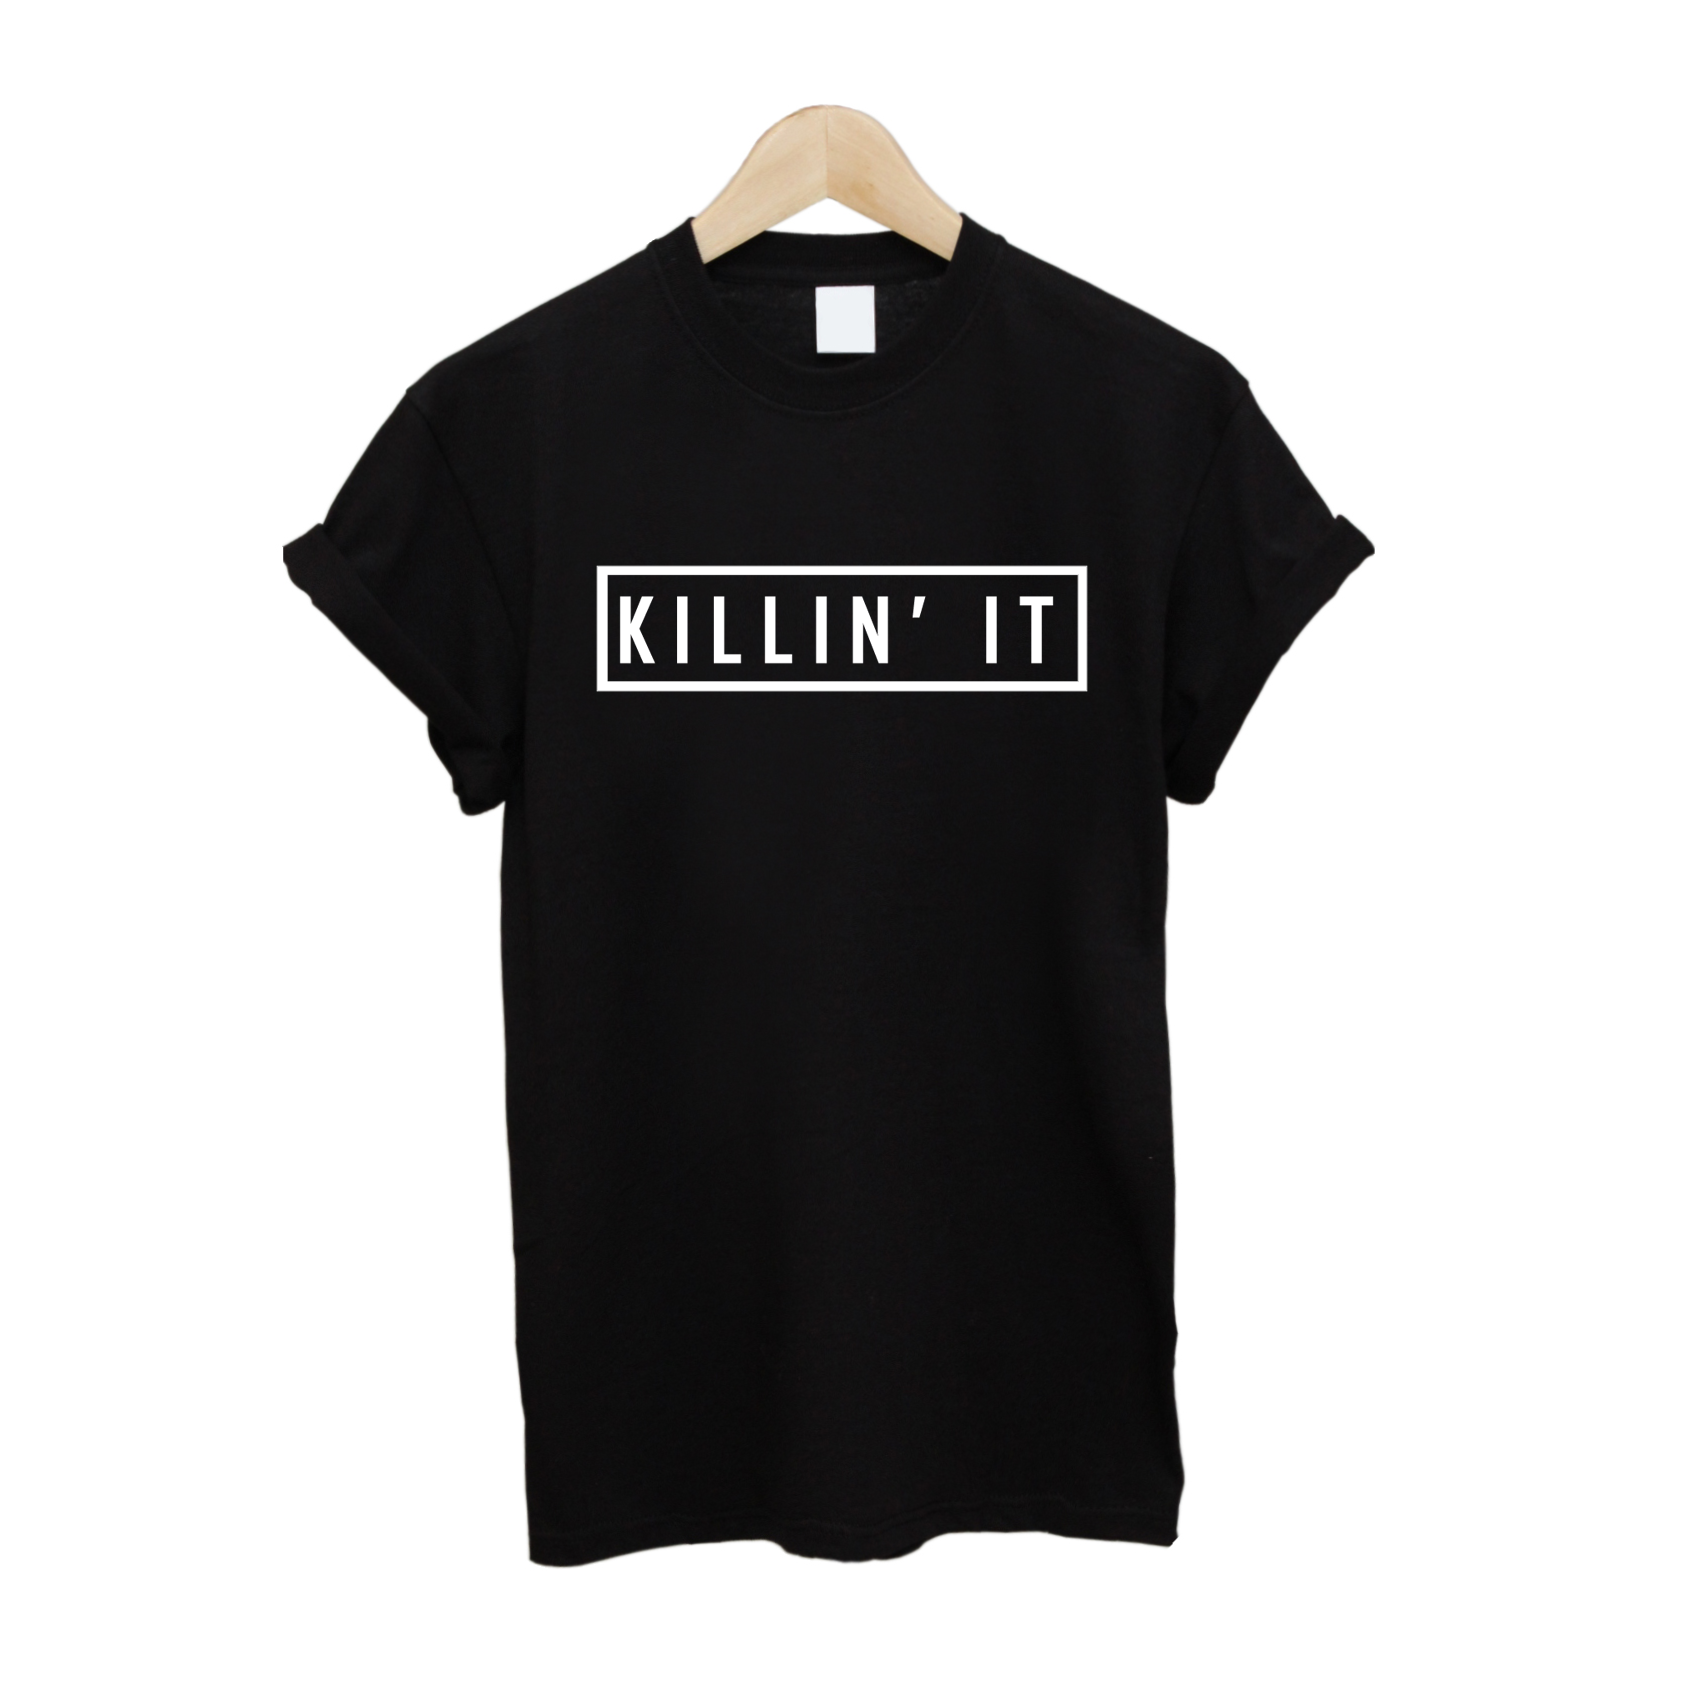 Killin' it t shirt £10   free uk delivery